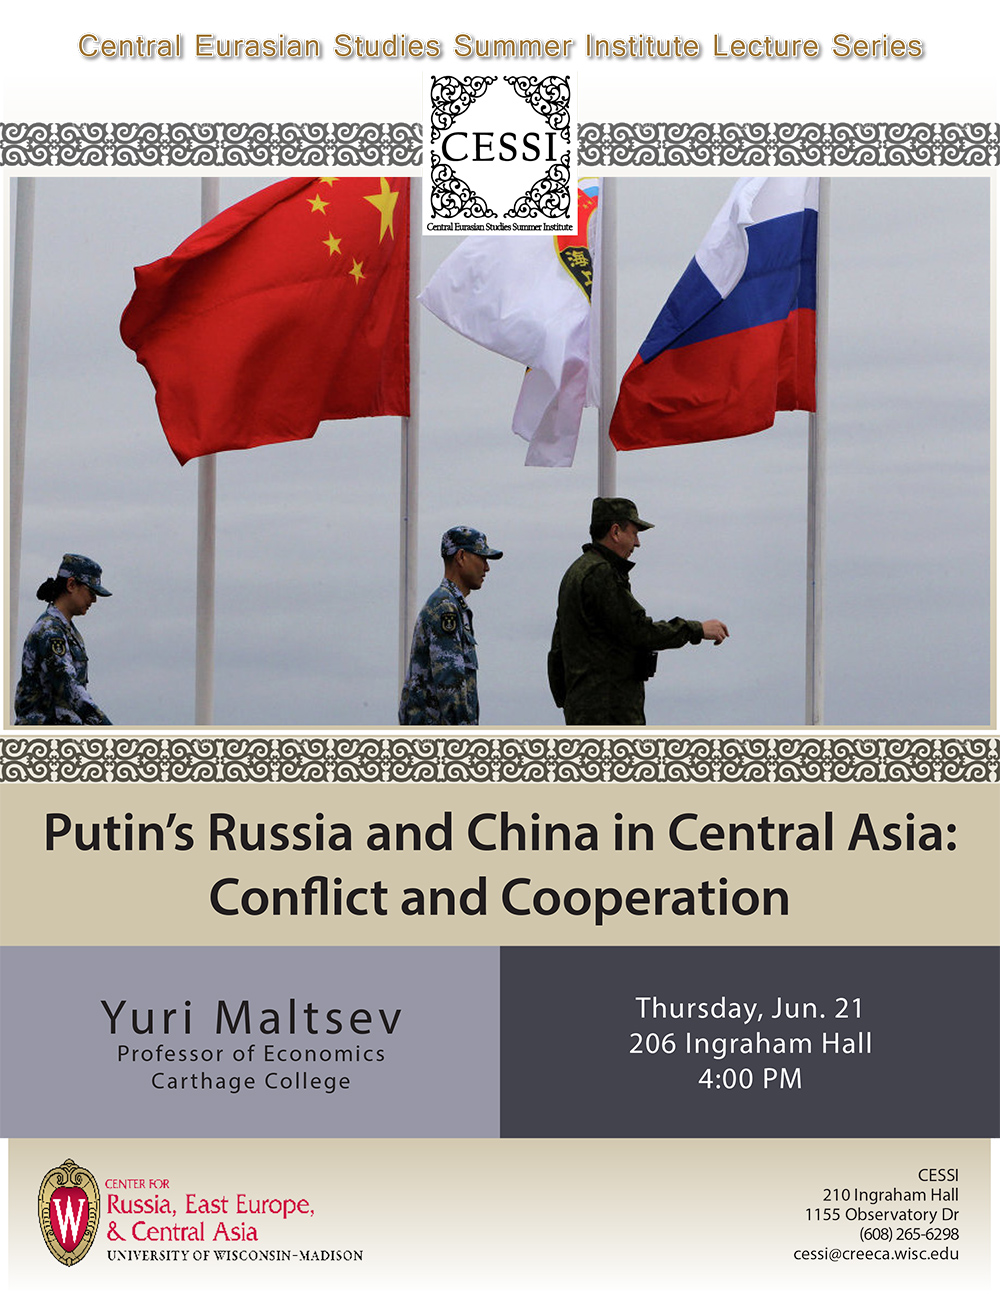 Poster for Maltsev lecture